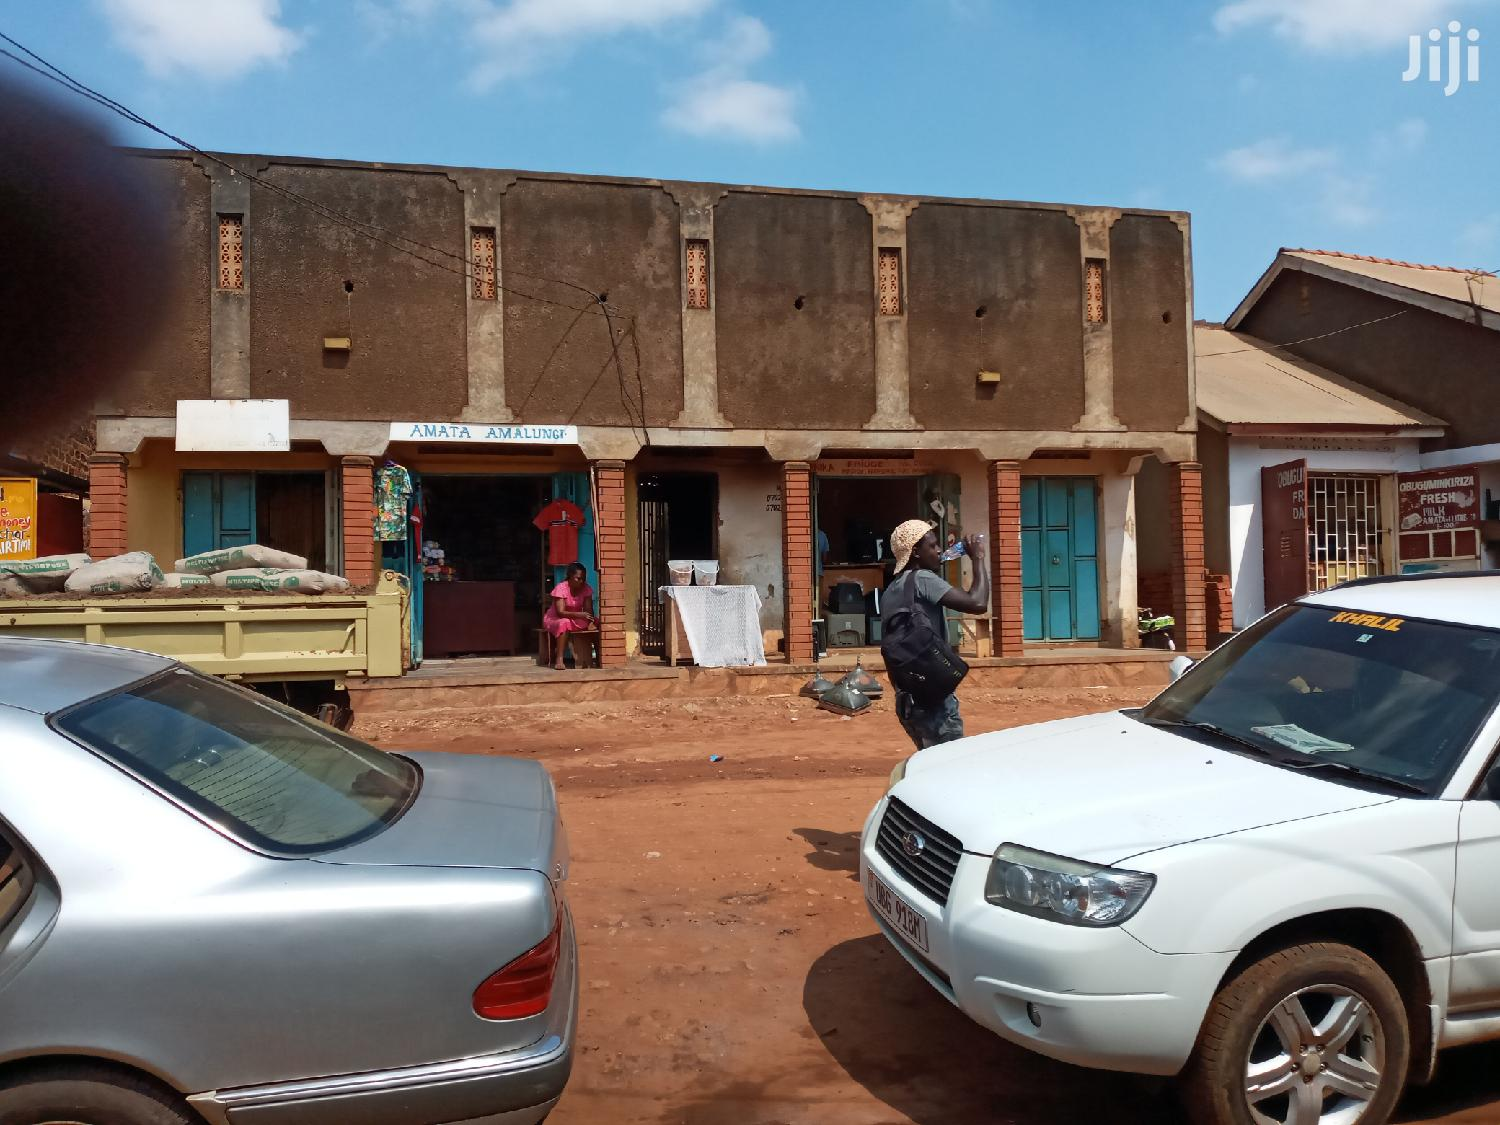 Comercial 4shops With More 4single Quicksale Bulenga Sumbwe | Commercial Property For Sale for sale in Kampala, Central Region, Uganda